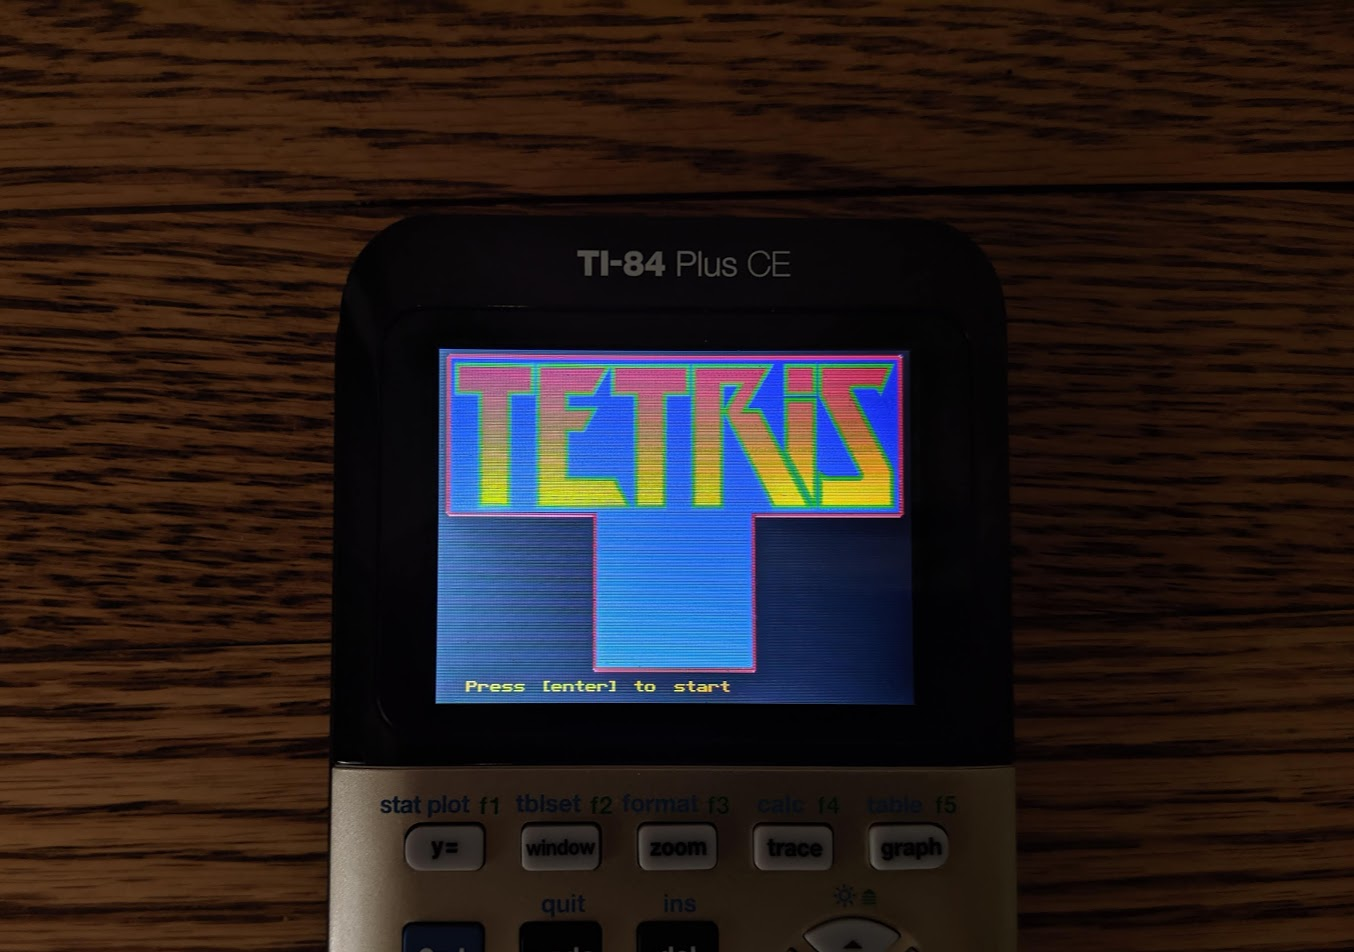 Tetris for the TI84 Plus CE